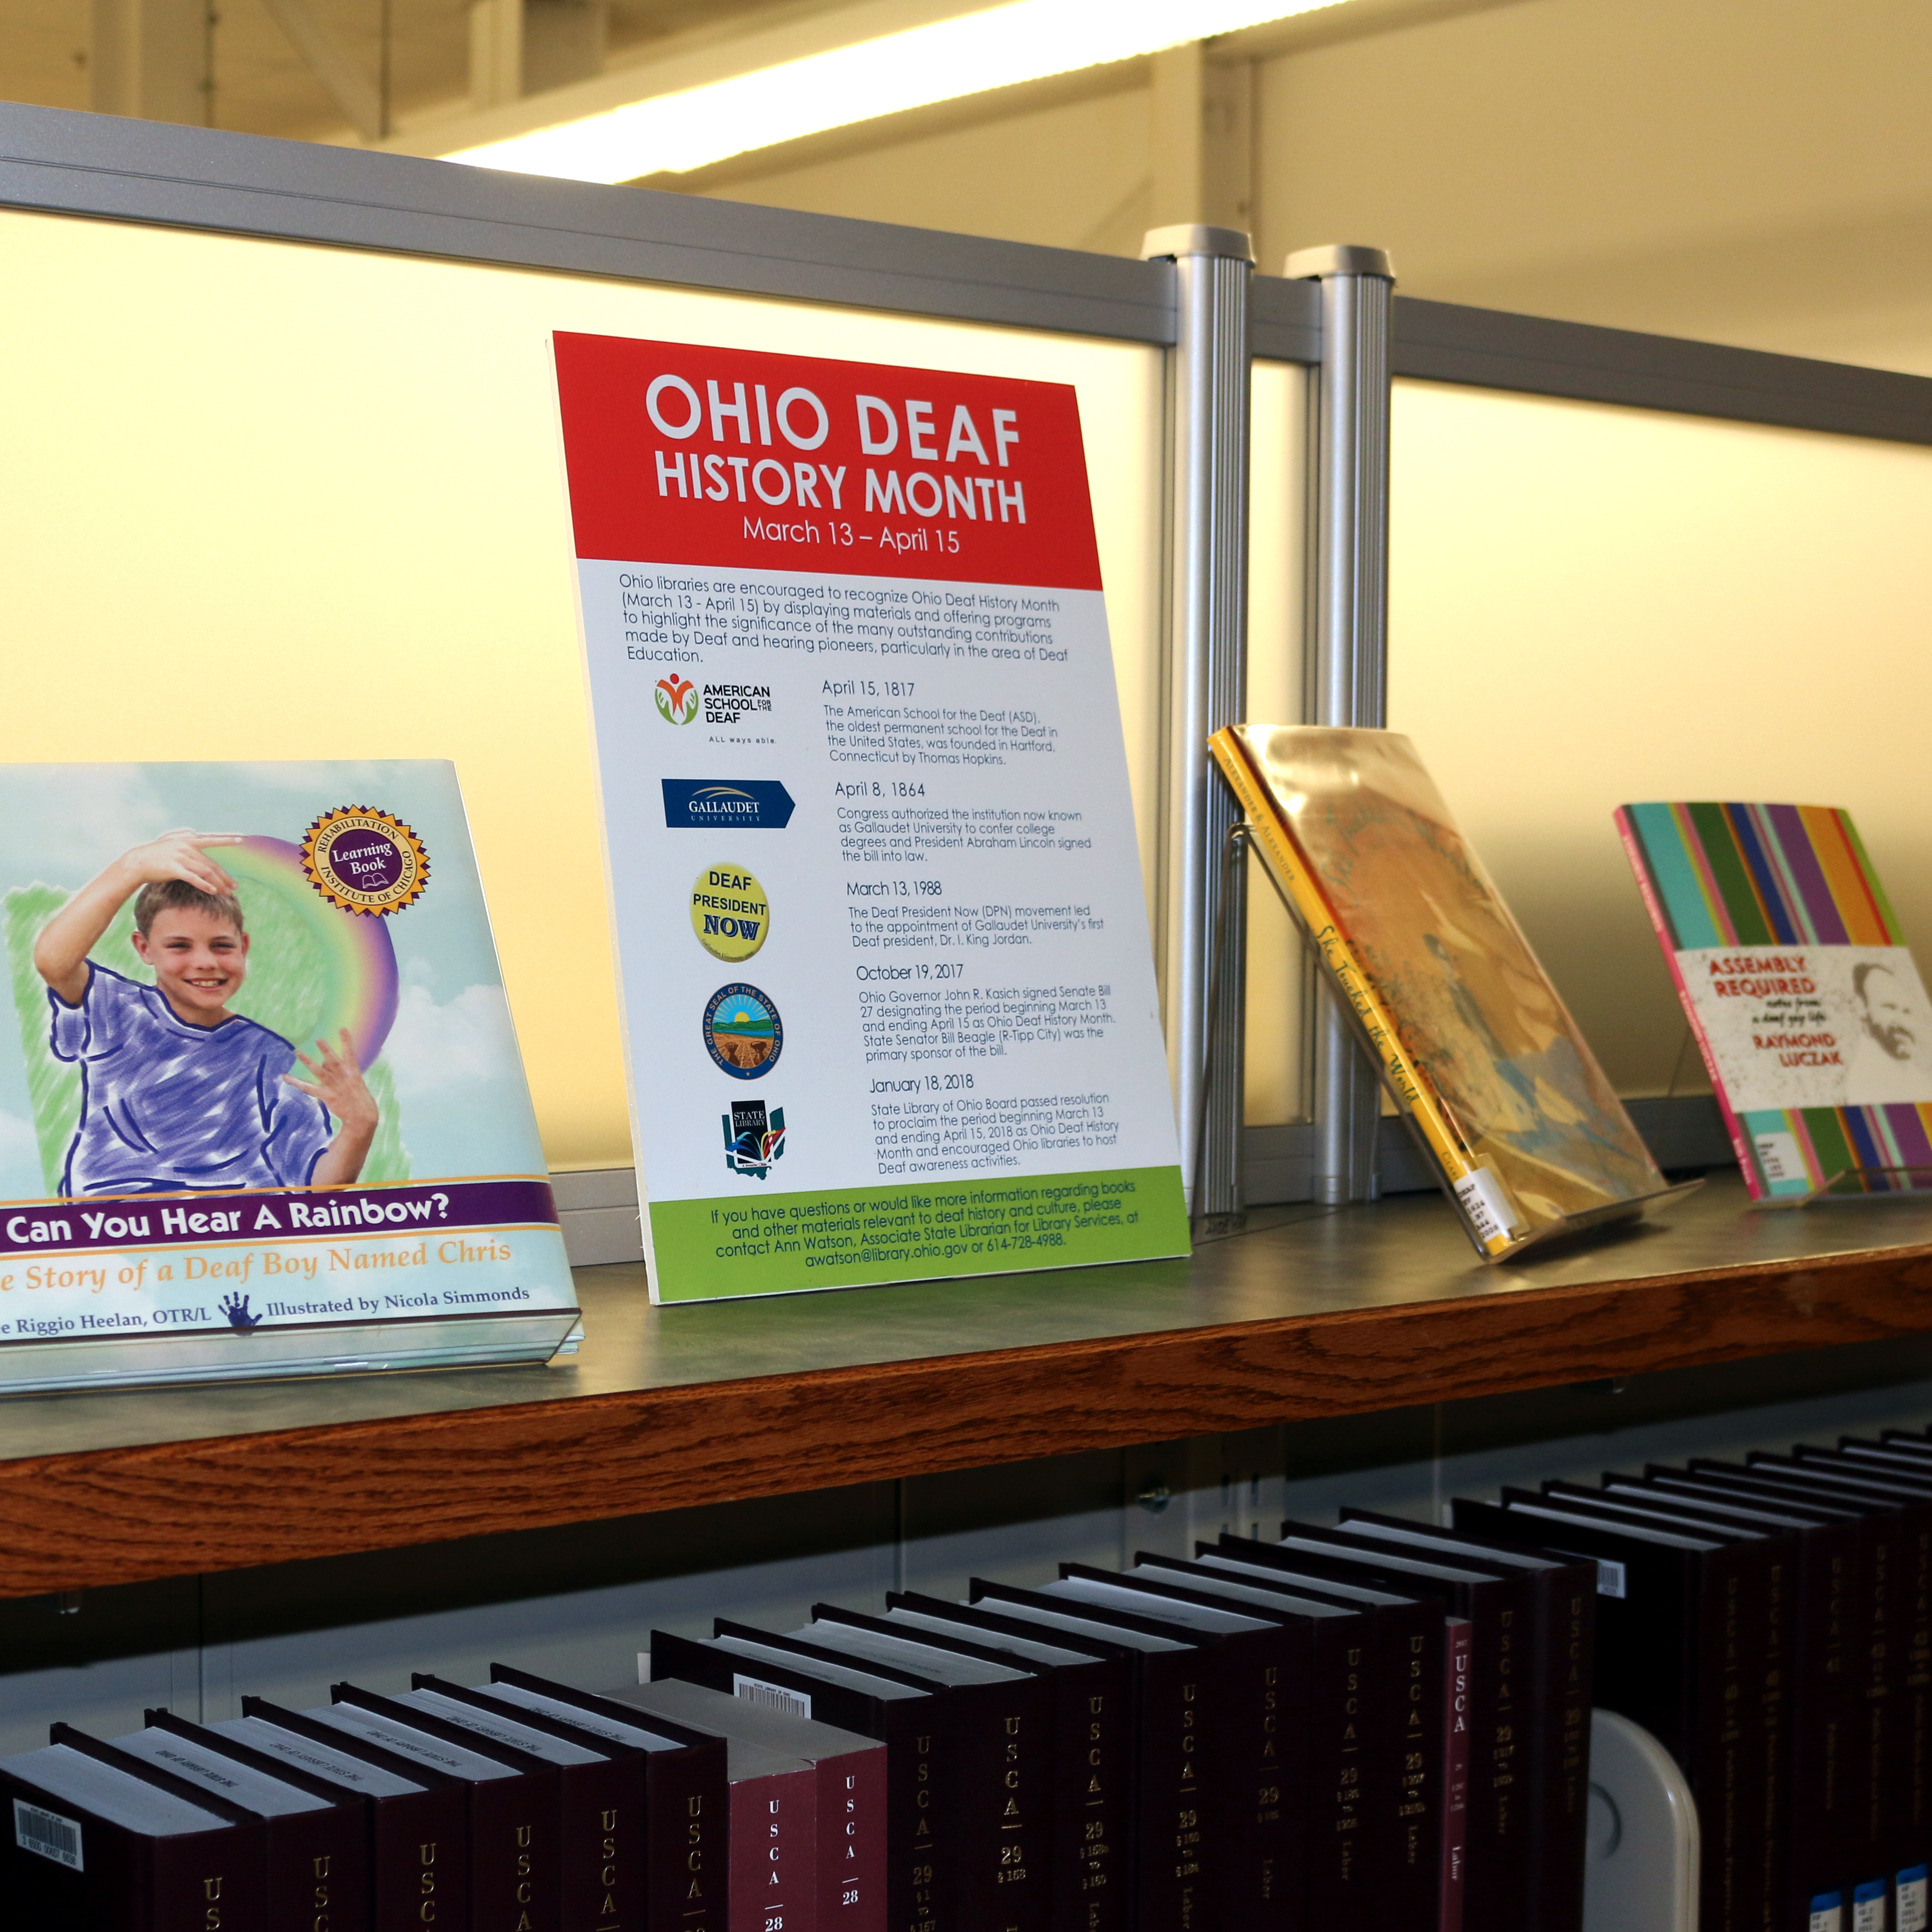 Photograph of book display in celebration of Ohio Deaf History Month